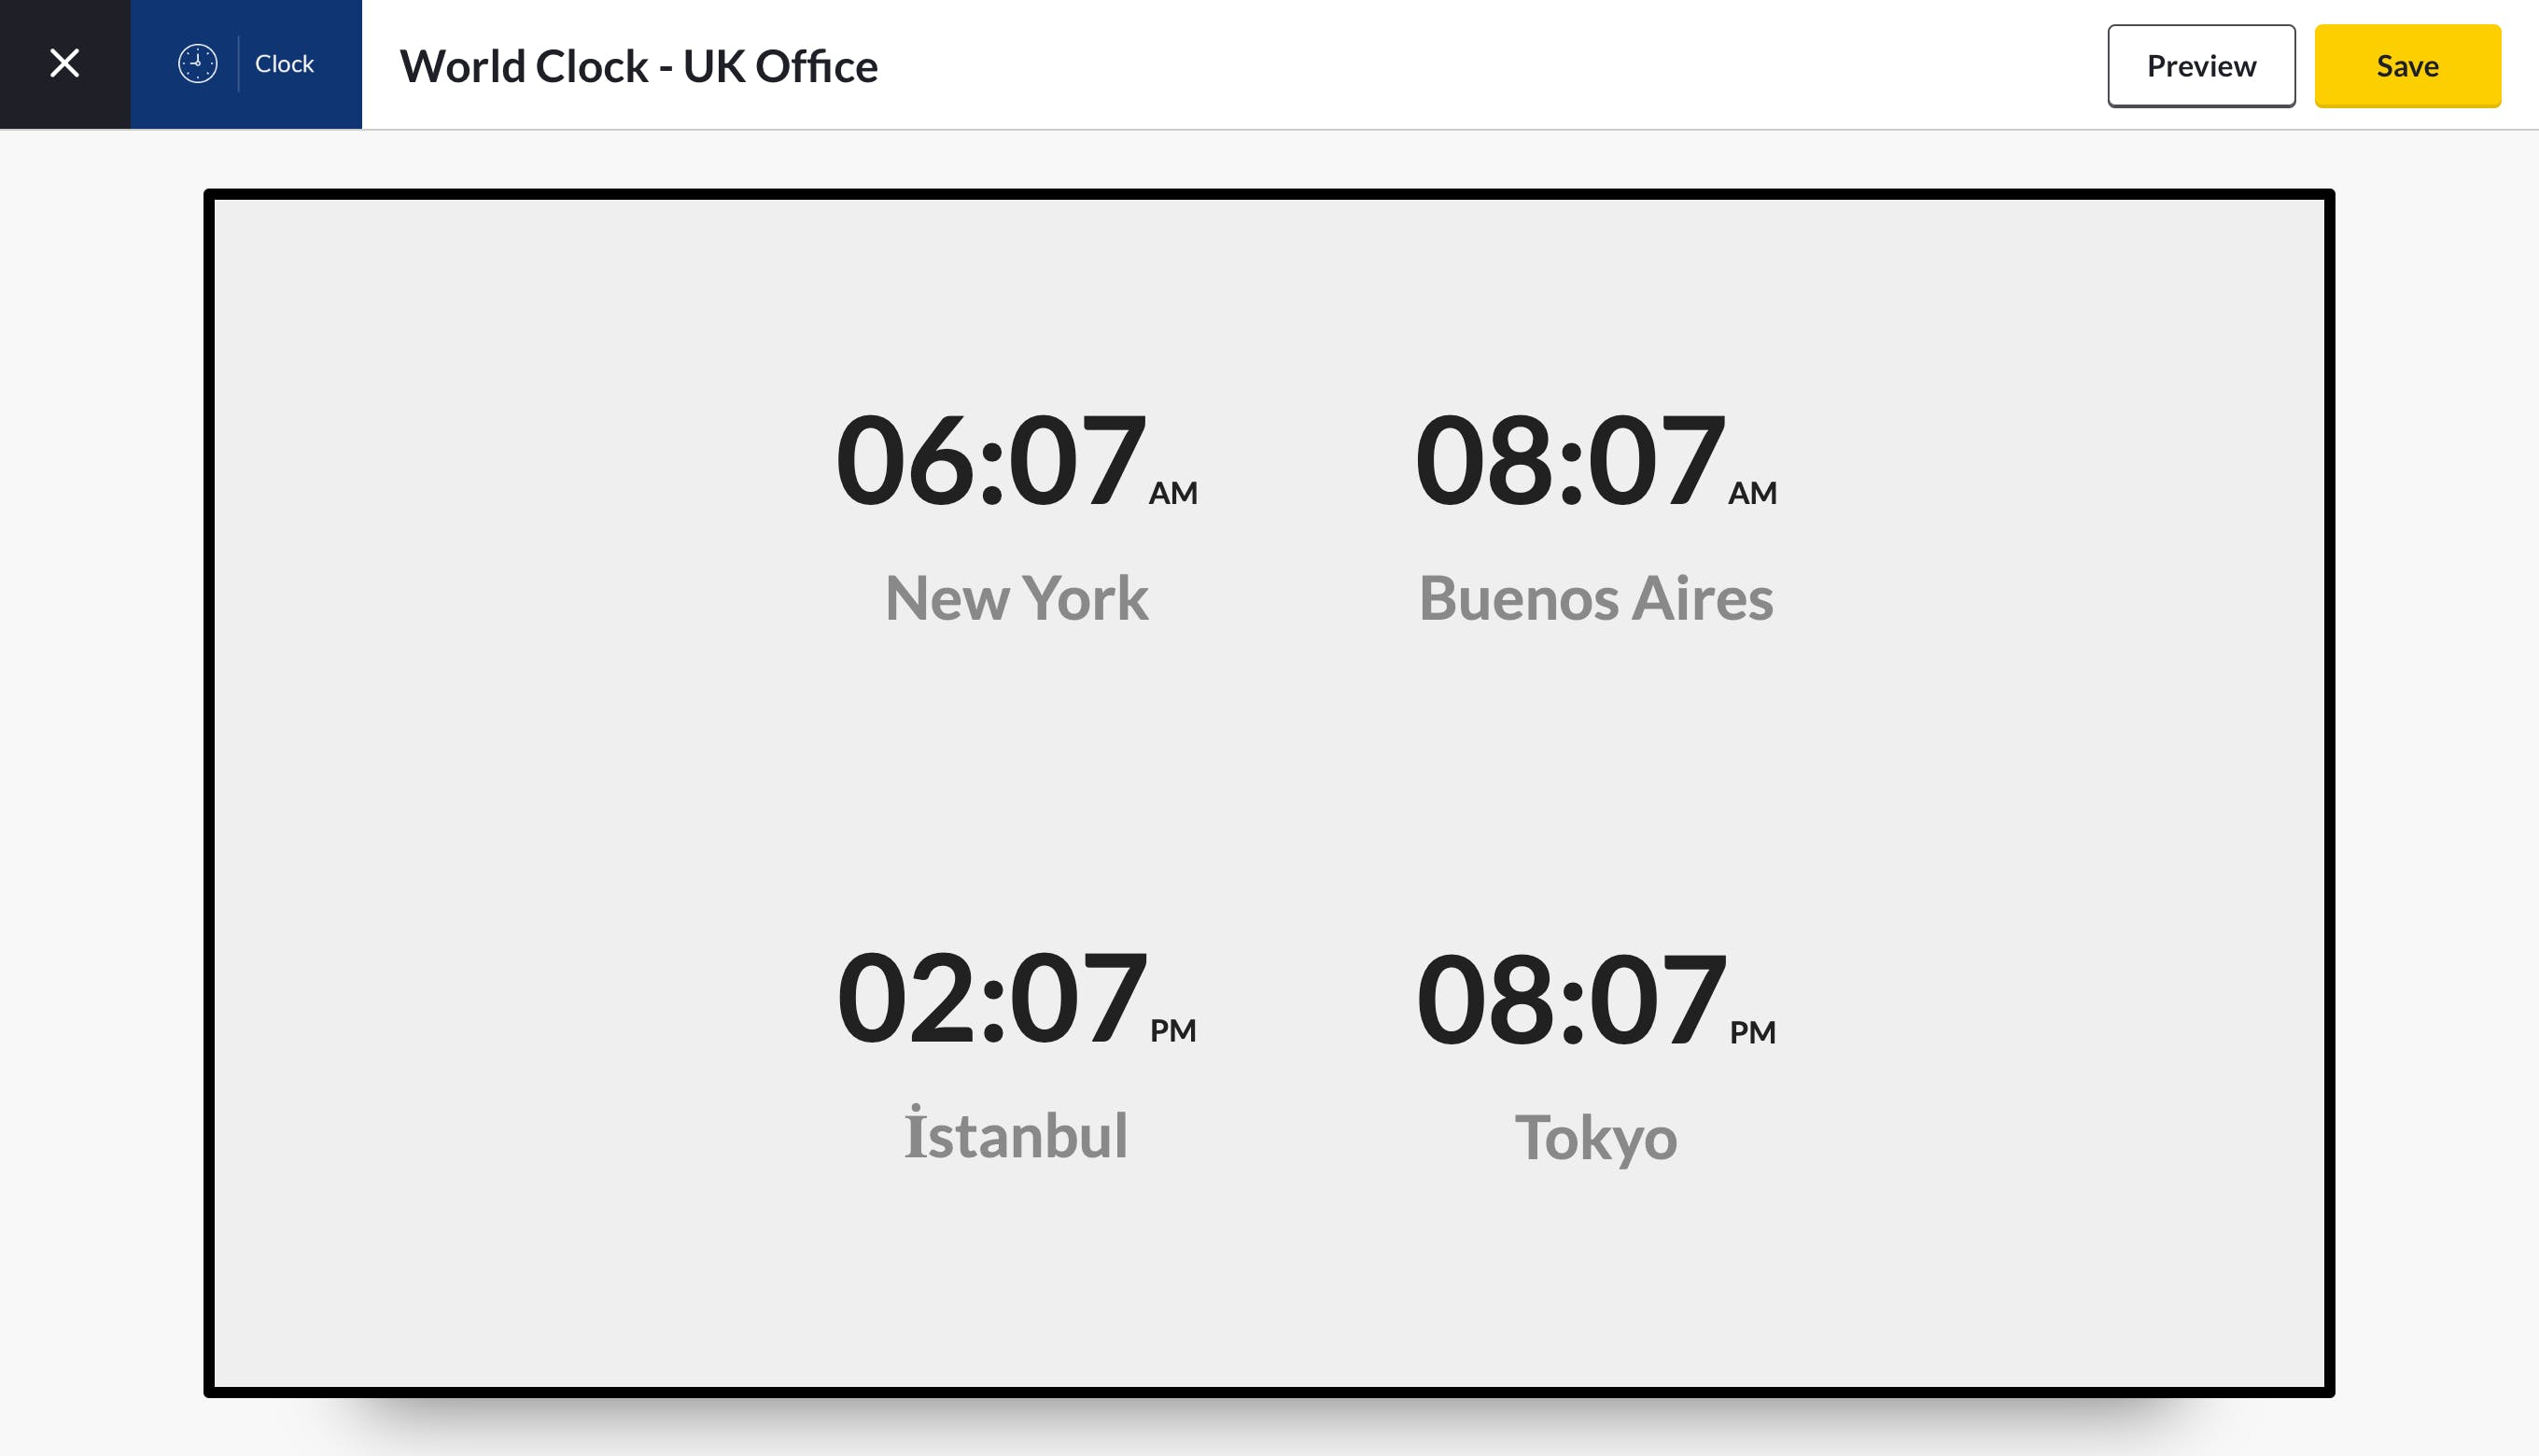 world clock app preview am/pm